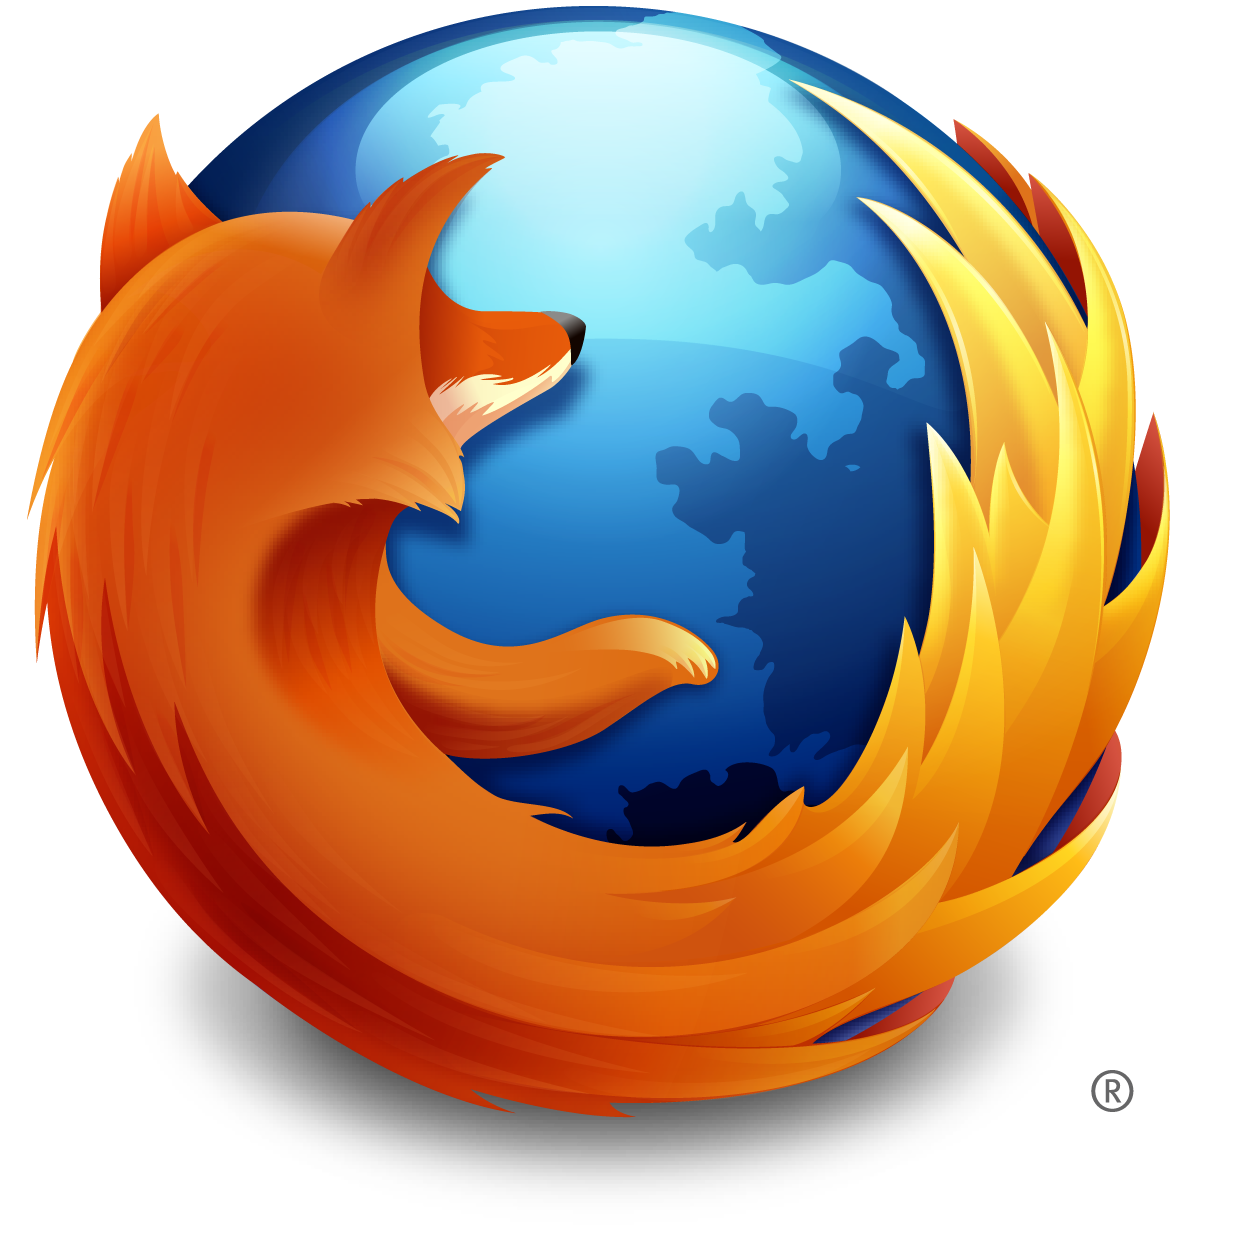 Datei:FirefoxLogo3.5.png.